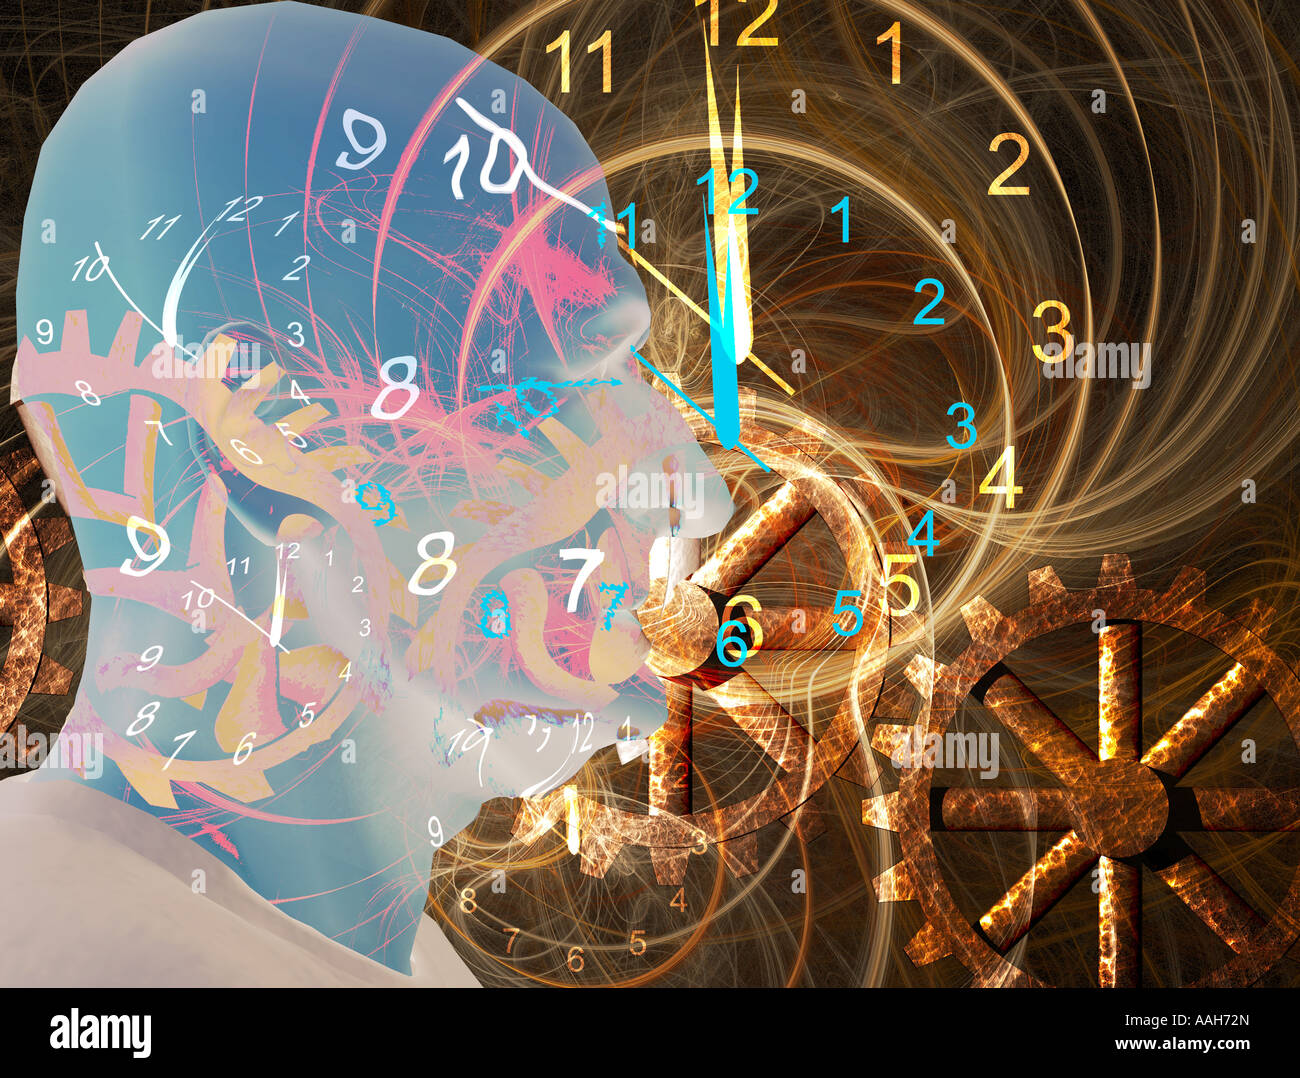 Warped time - Stock Image